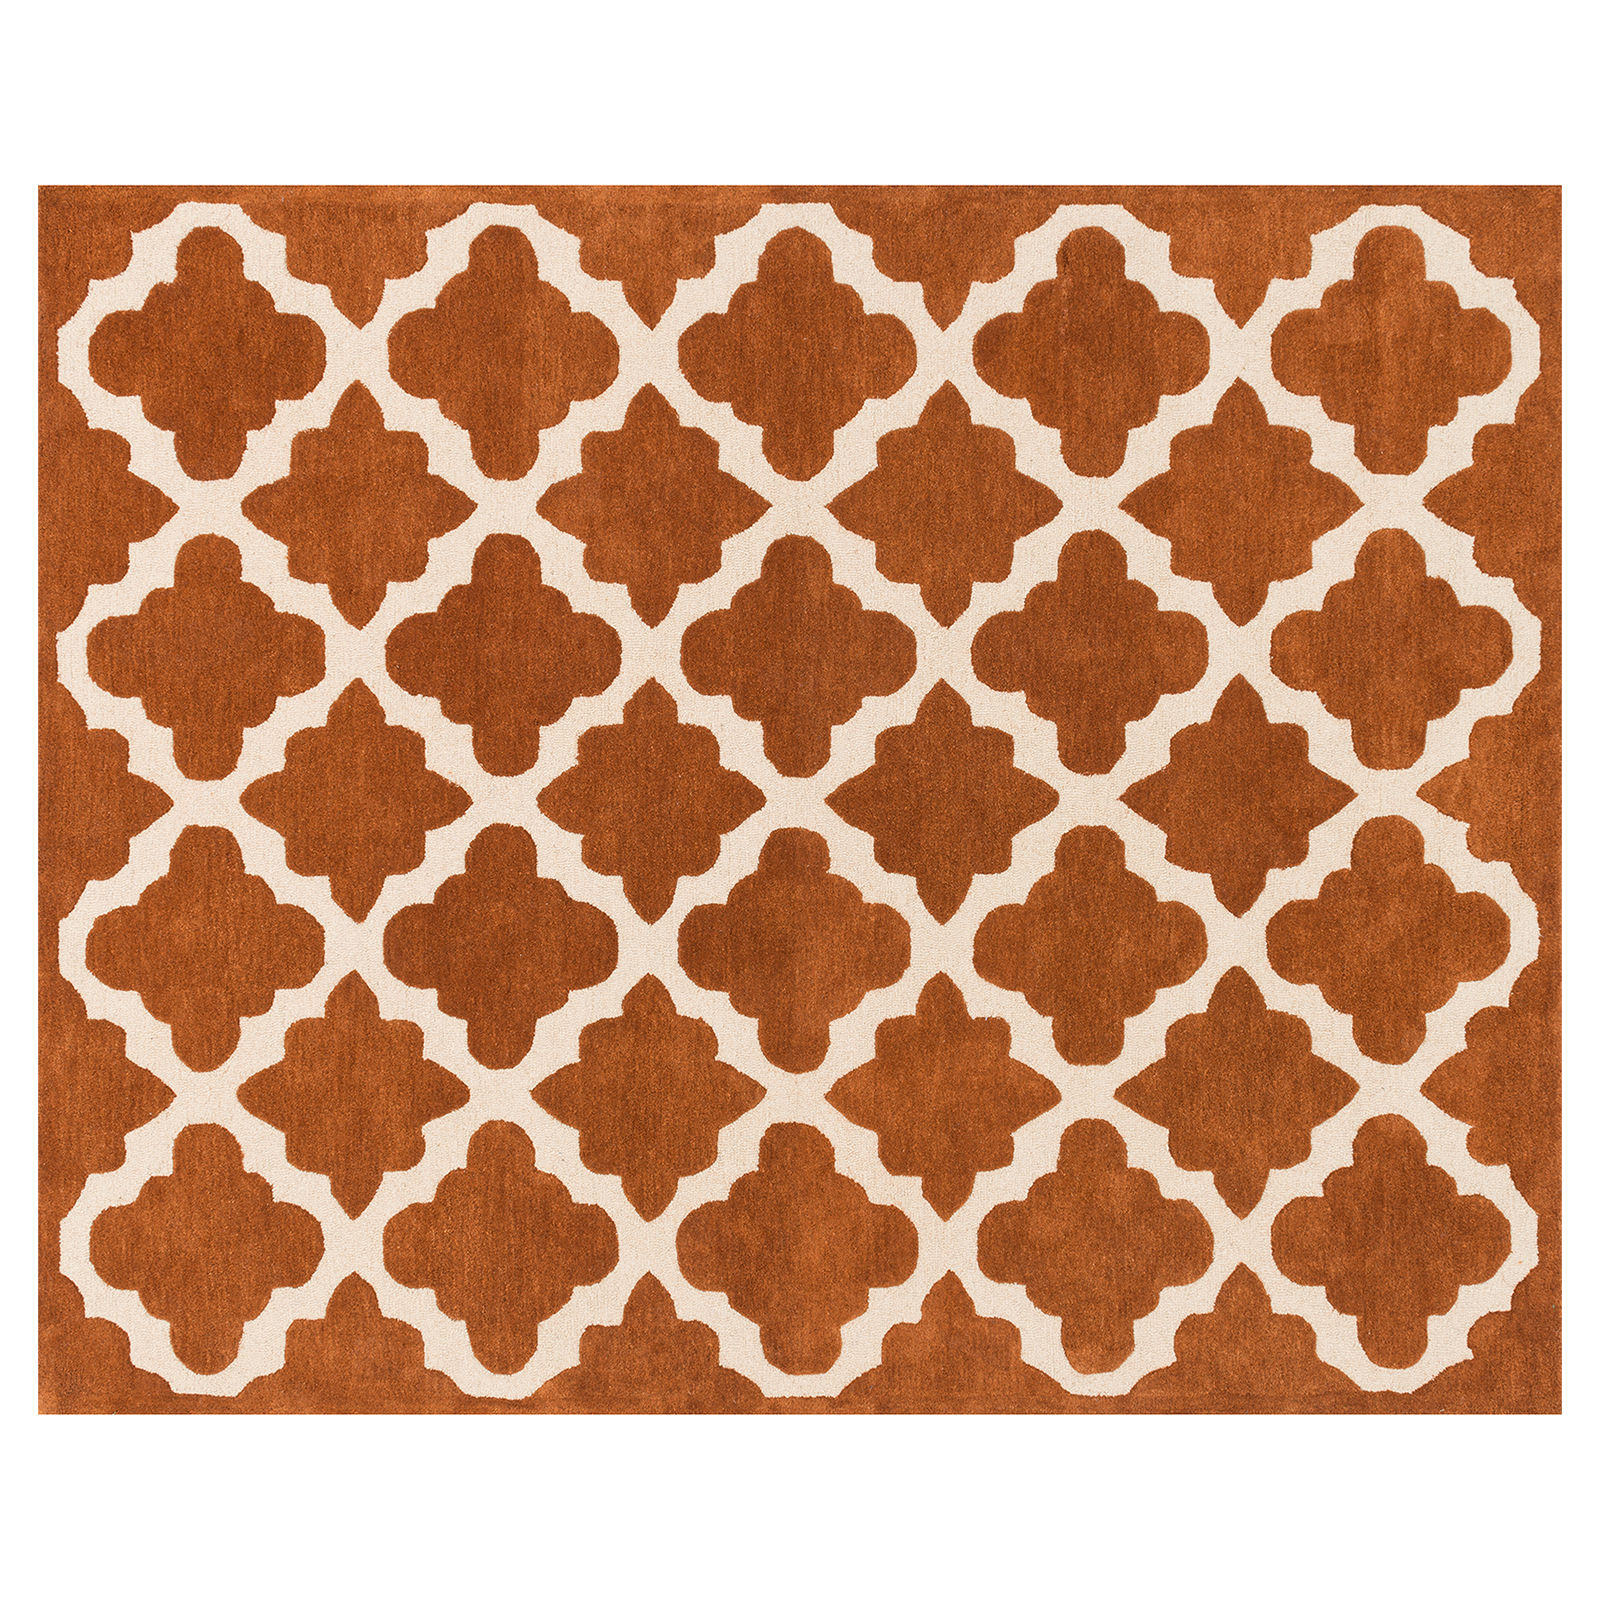 Home Depot Braided Rugs | Square Rugs 7x7 | Cheap Area Rugs 8x10 Under 100